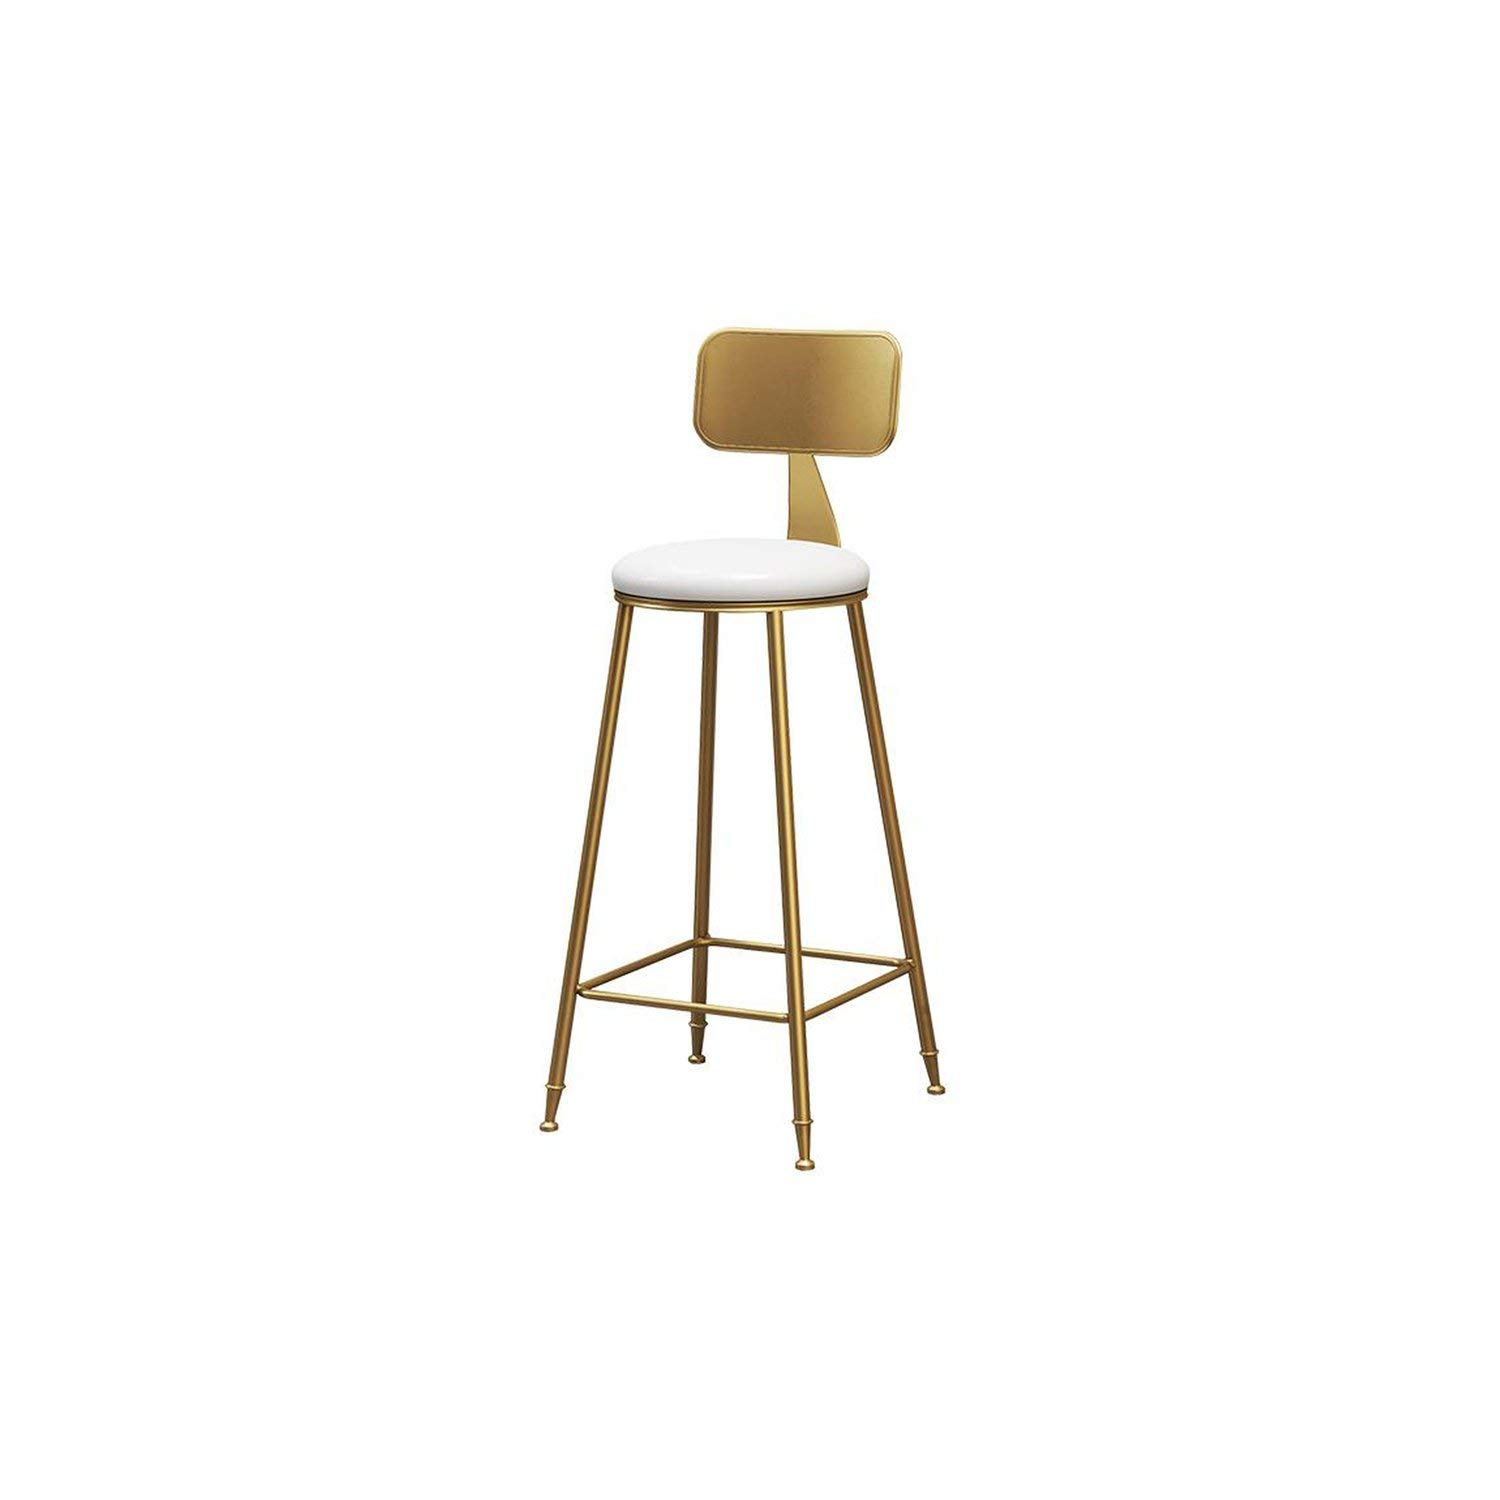 45cm Style4 tthappy76 Nordic Wrought Iron Bar Stool Modern Minimalist Home Backrest Dining Chair High Stool Cafe Bar Stool Bar Stool,65Cm Style19